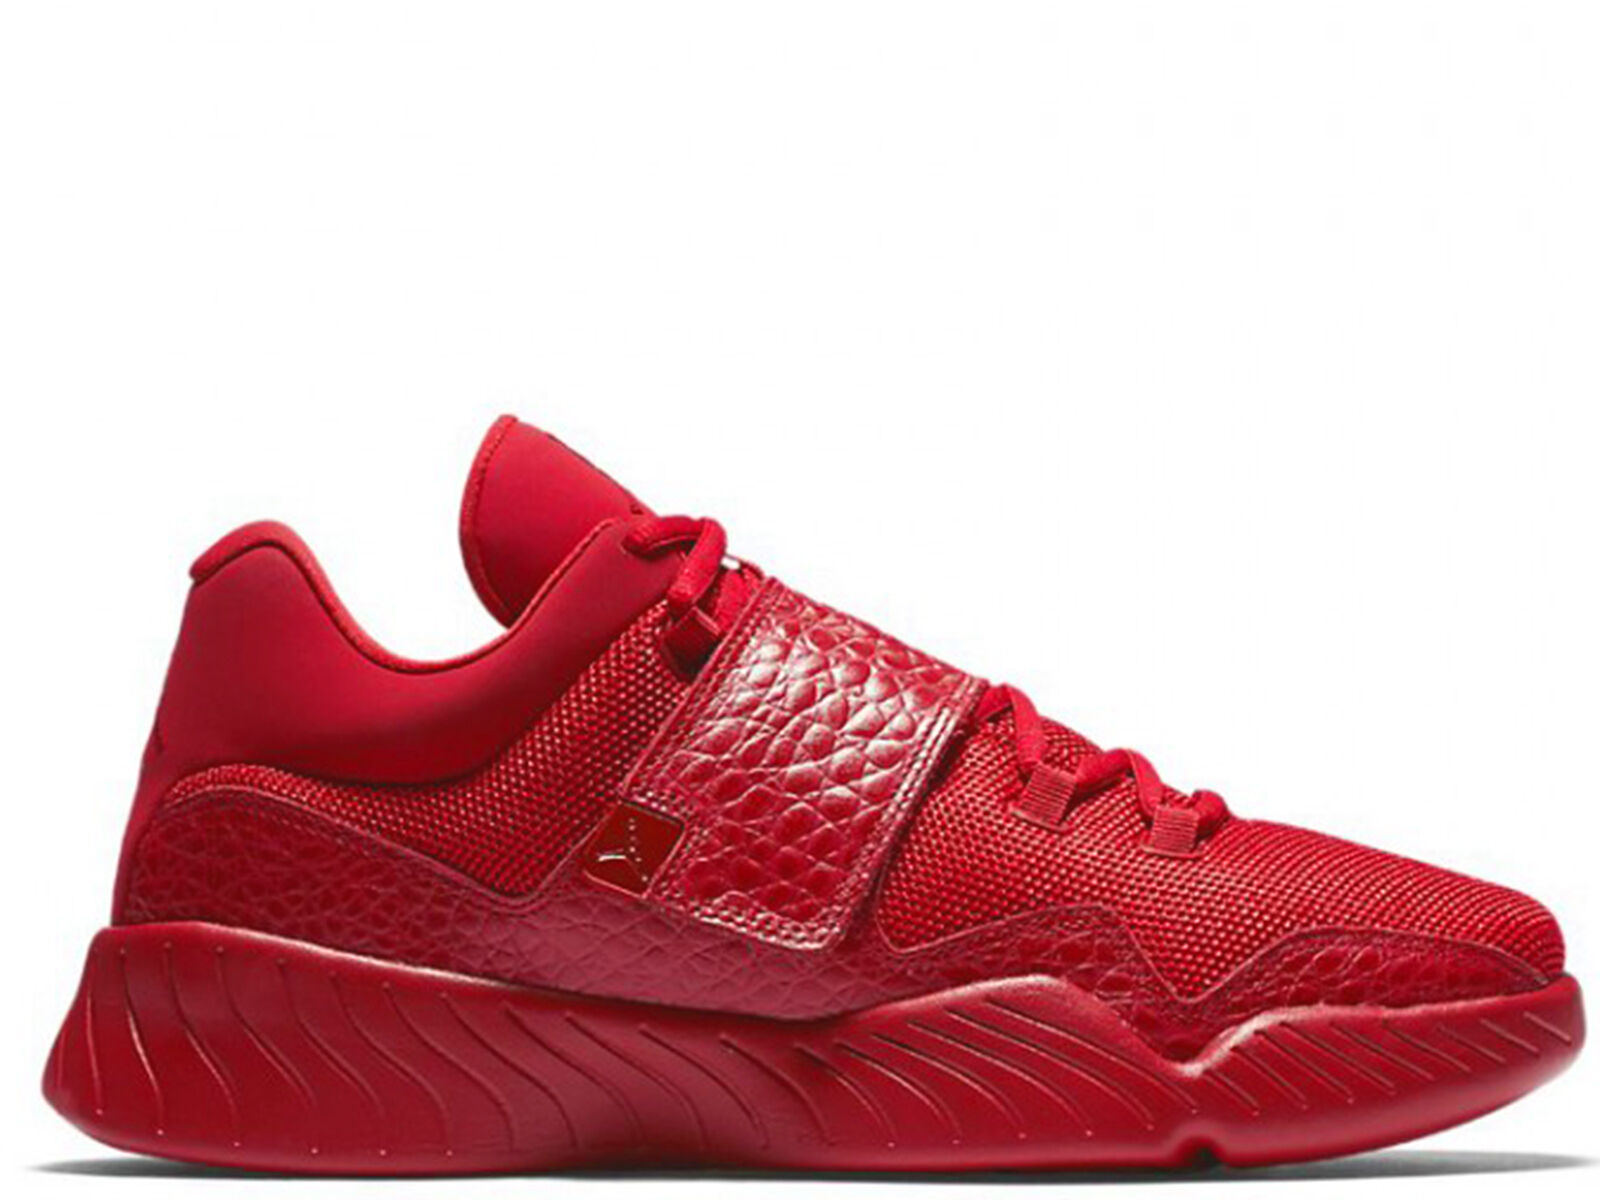 Brand New Jordan J23 Men's Athletic Fashion Sneakers Price reduction Comfortable and good-looking